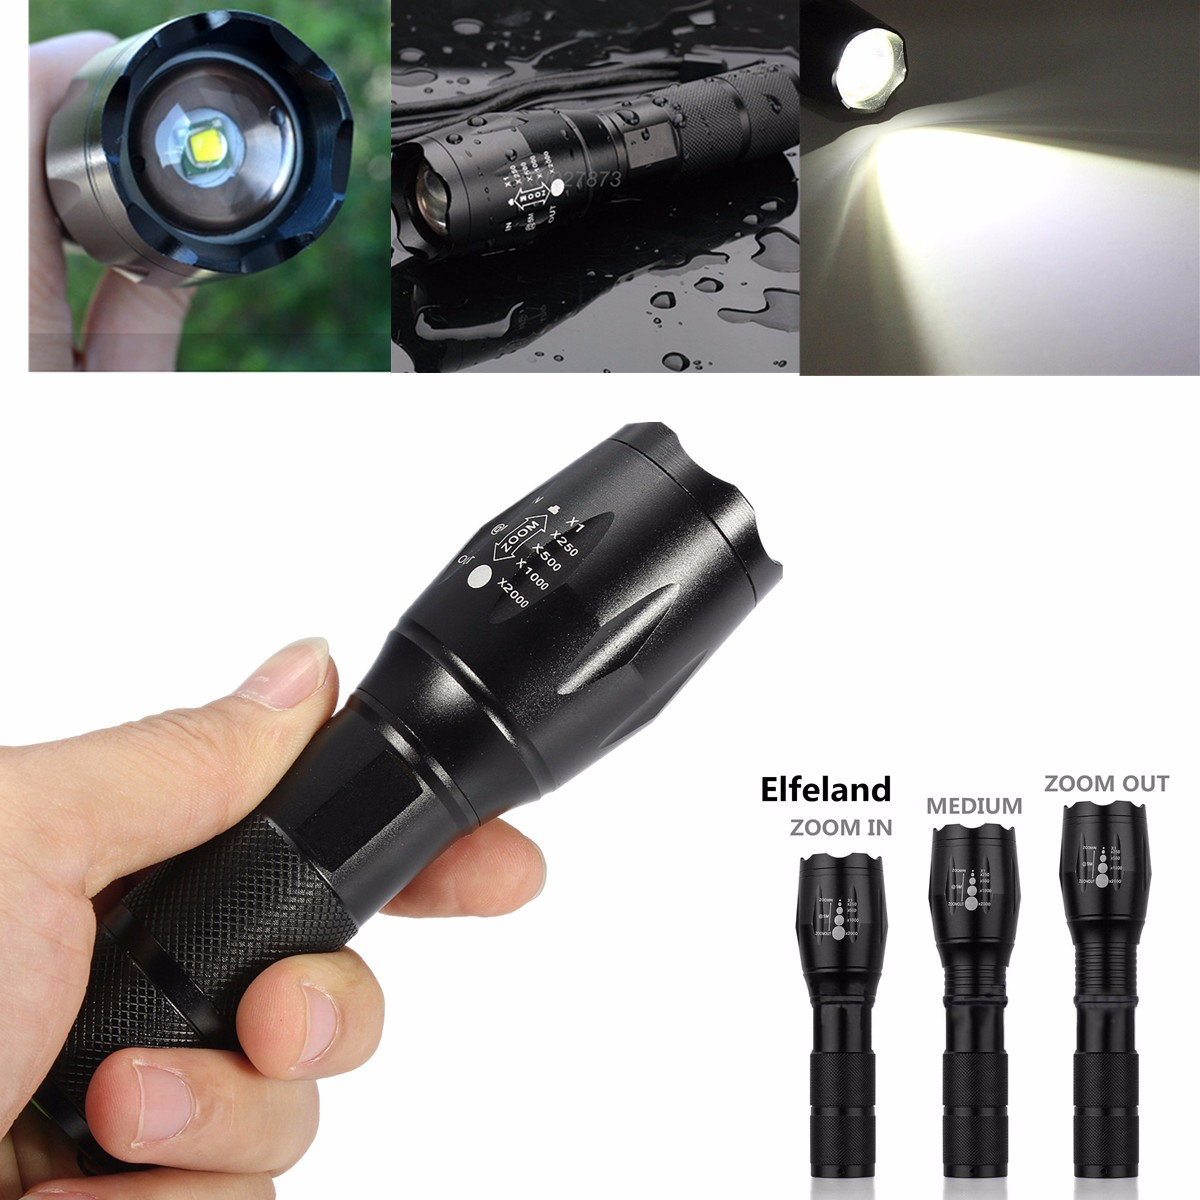 Elfeland 3000 Lm T6 LED Zoomable Focus Flashlight Tactical Torch Light Lantern Waterproof 5 Modes Portable